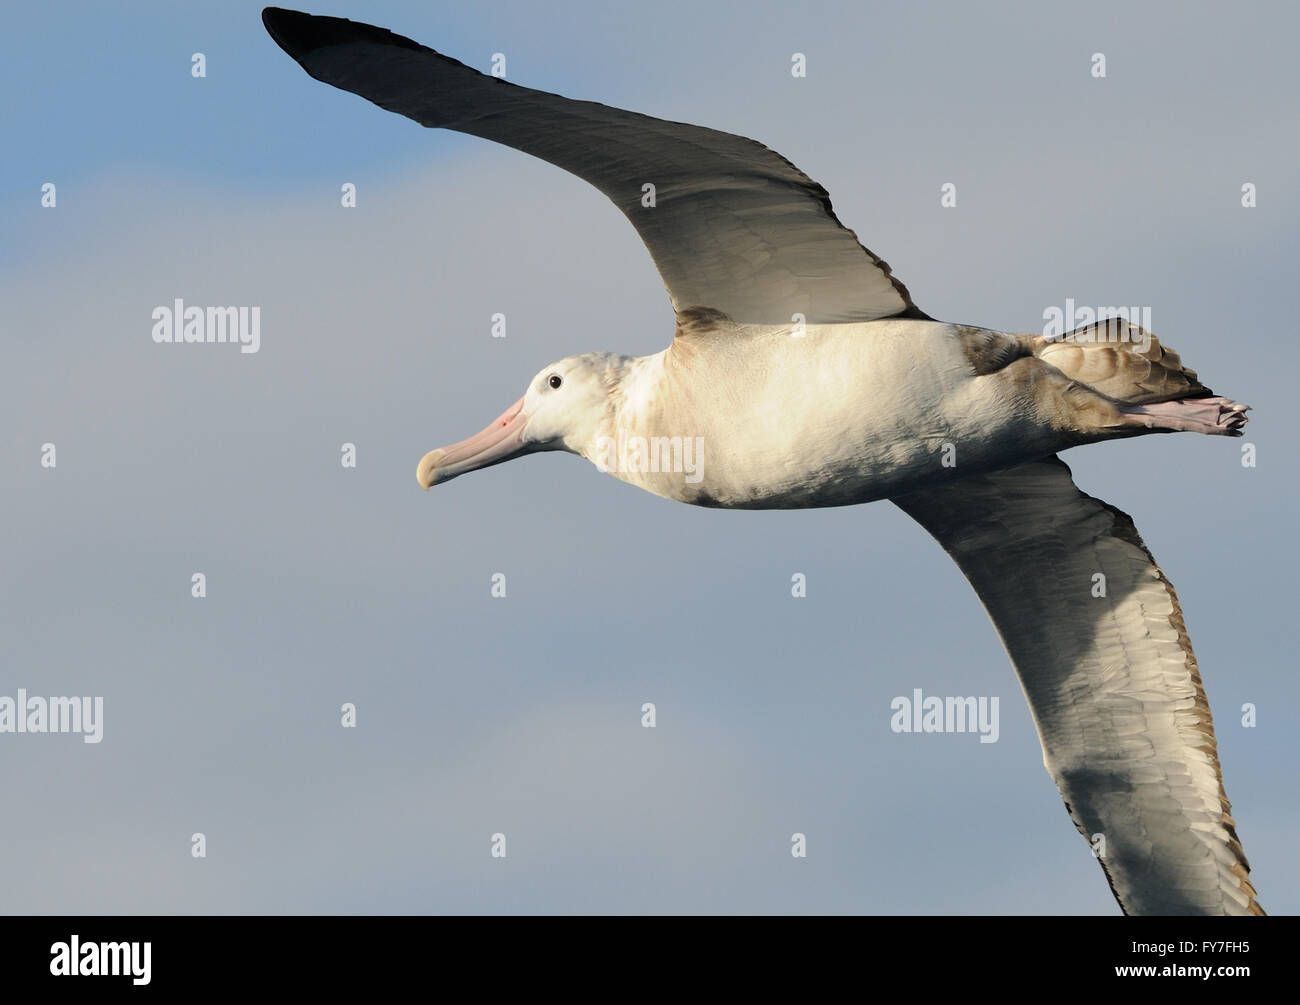 A Wandering Albatross (Diomedea exulans) in flight. Southern Ocean,  South Georgia. - Stock Image